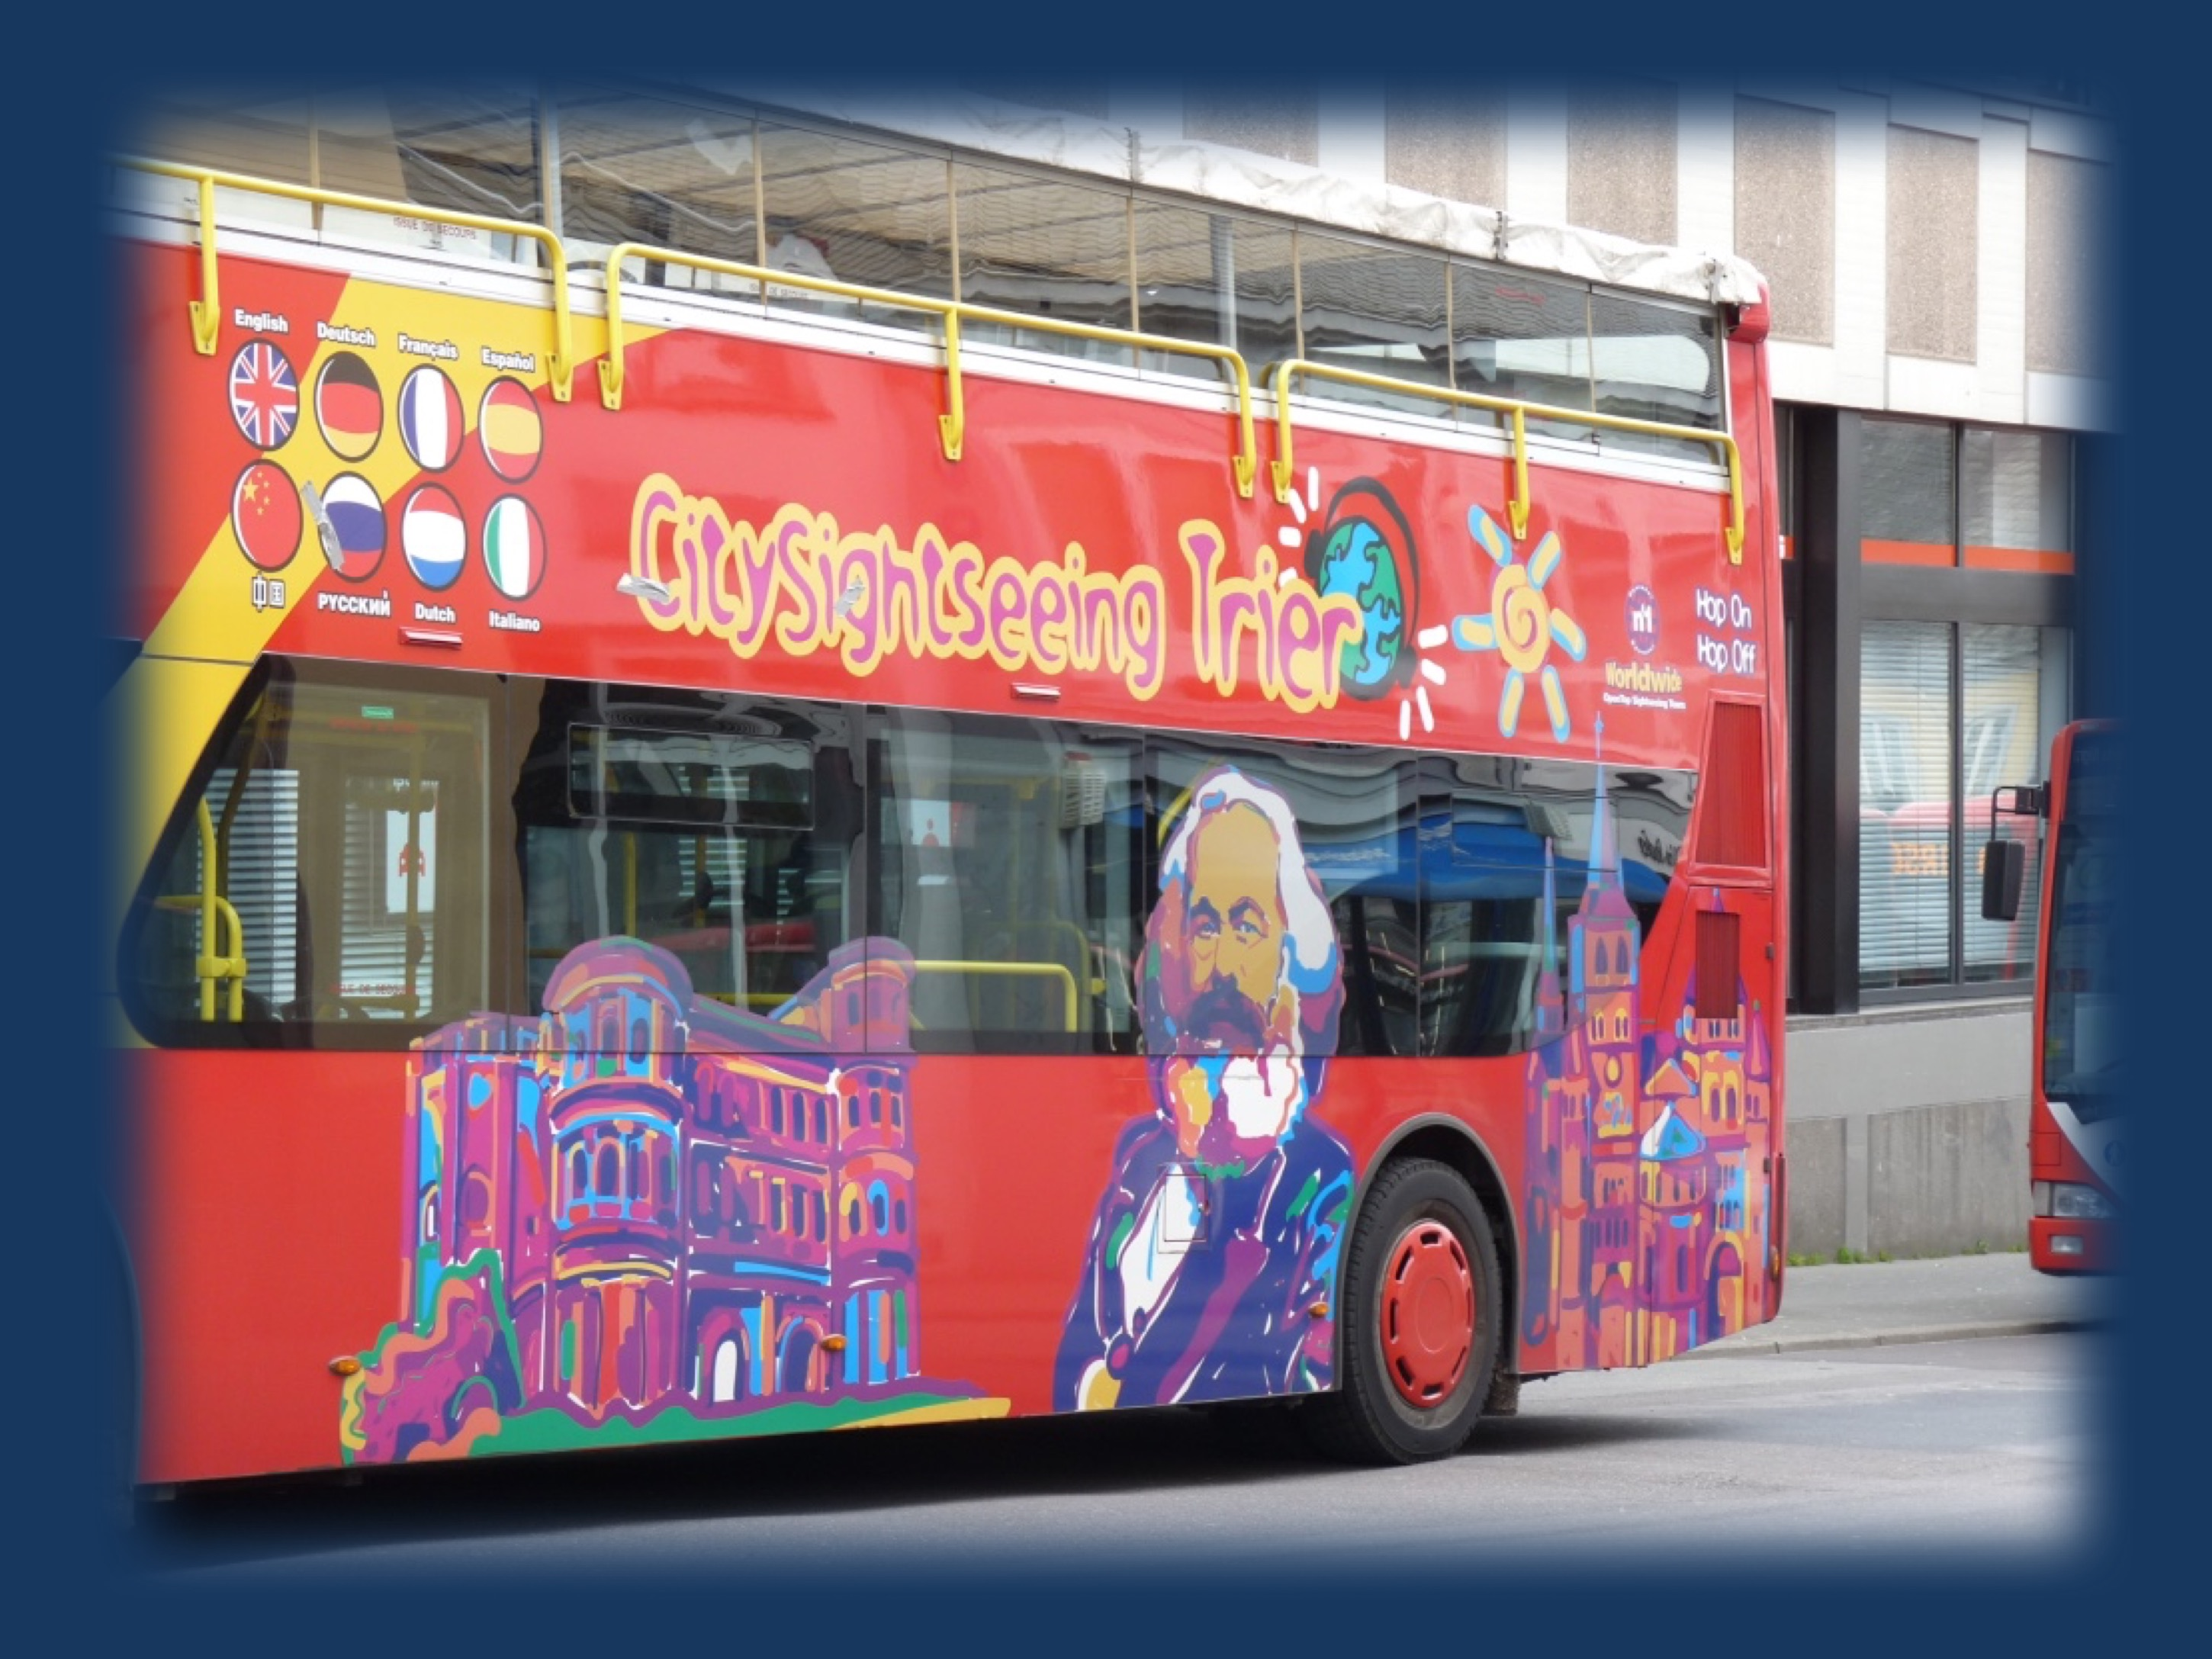 Figure 1. A tourist bus in Trier, Germany featuring Porta Nigra, Karl Marx, and the Trier cathedral.